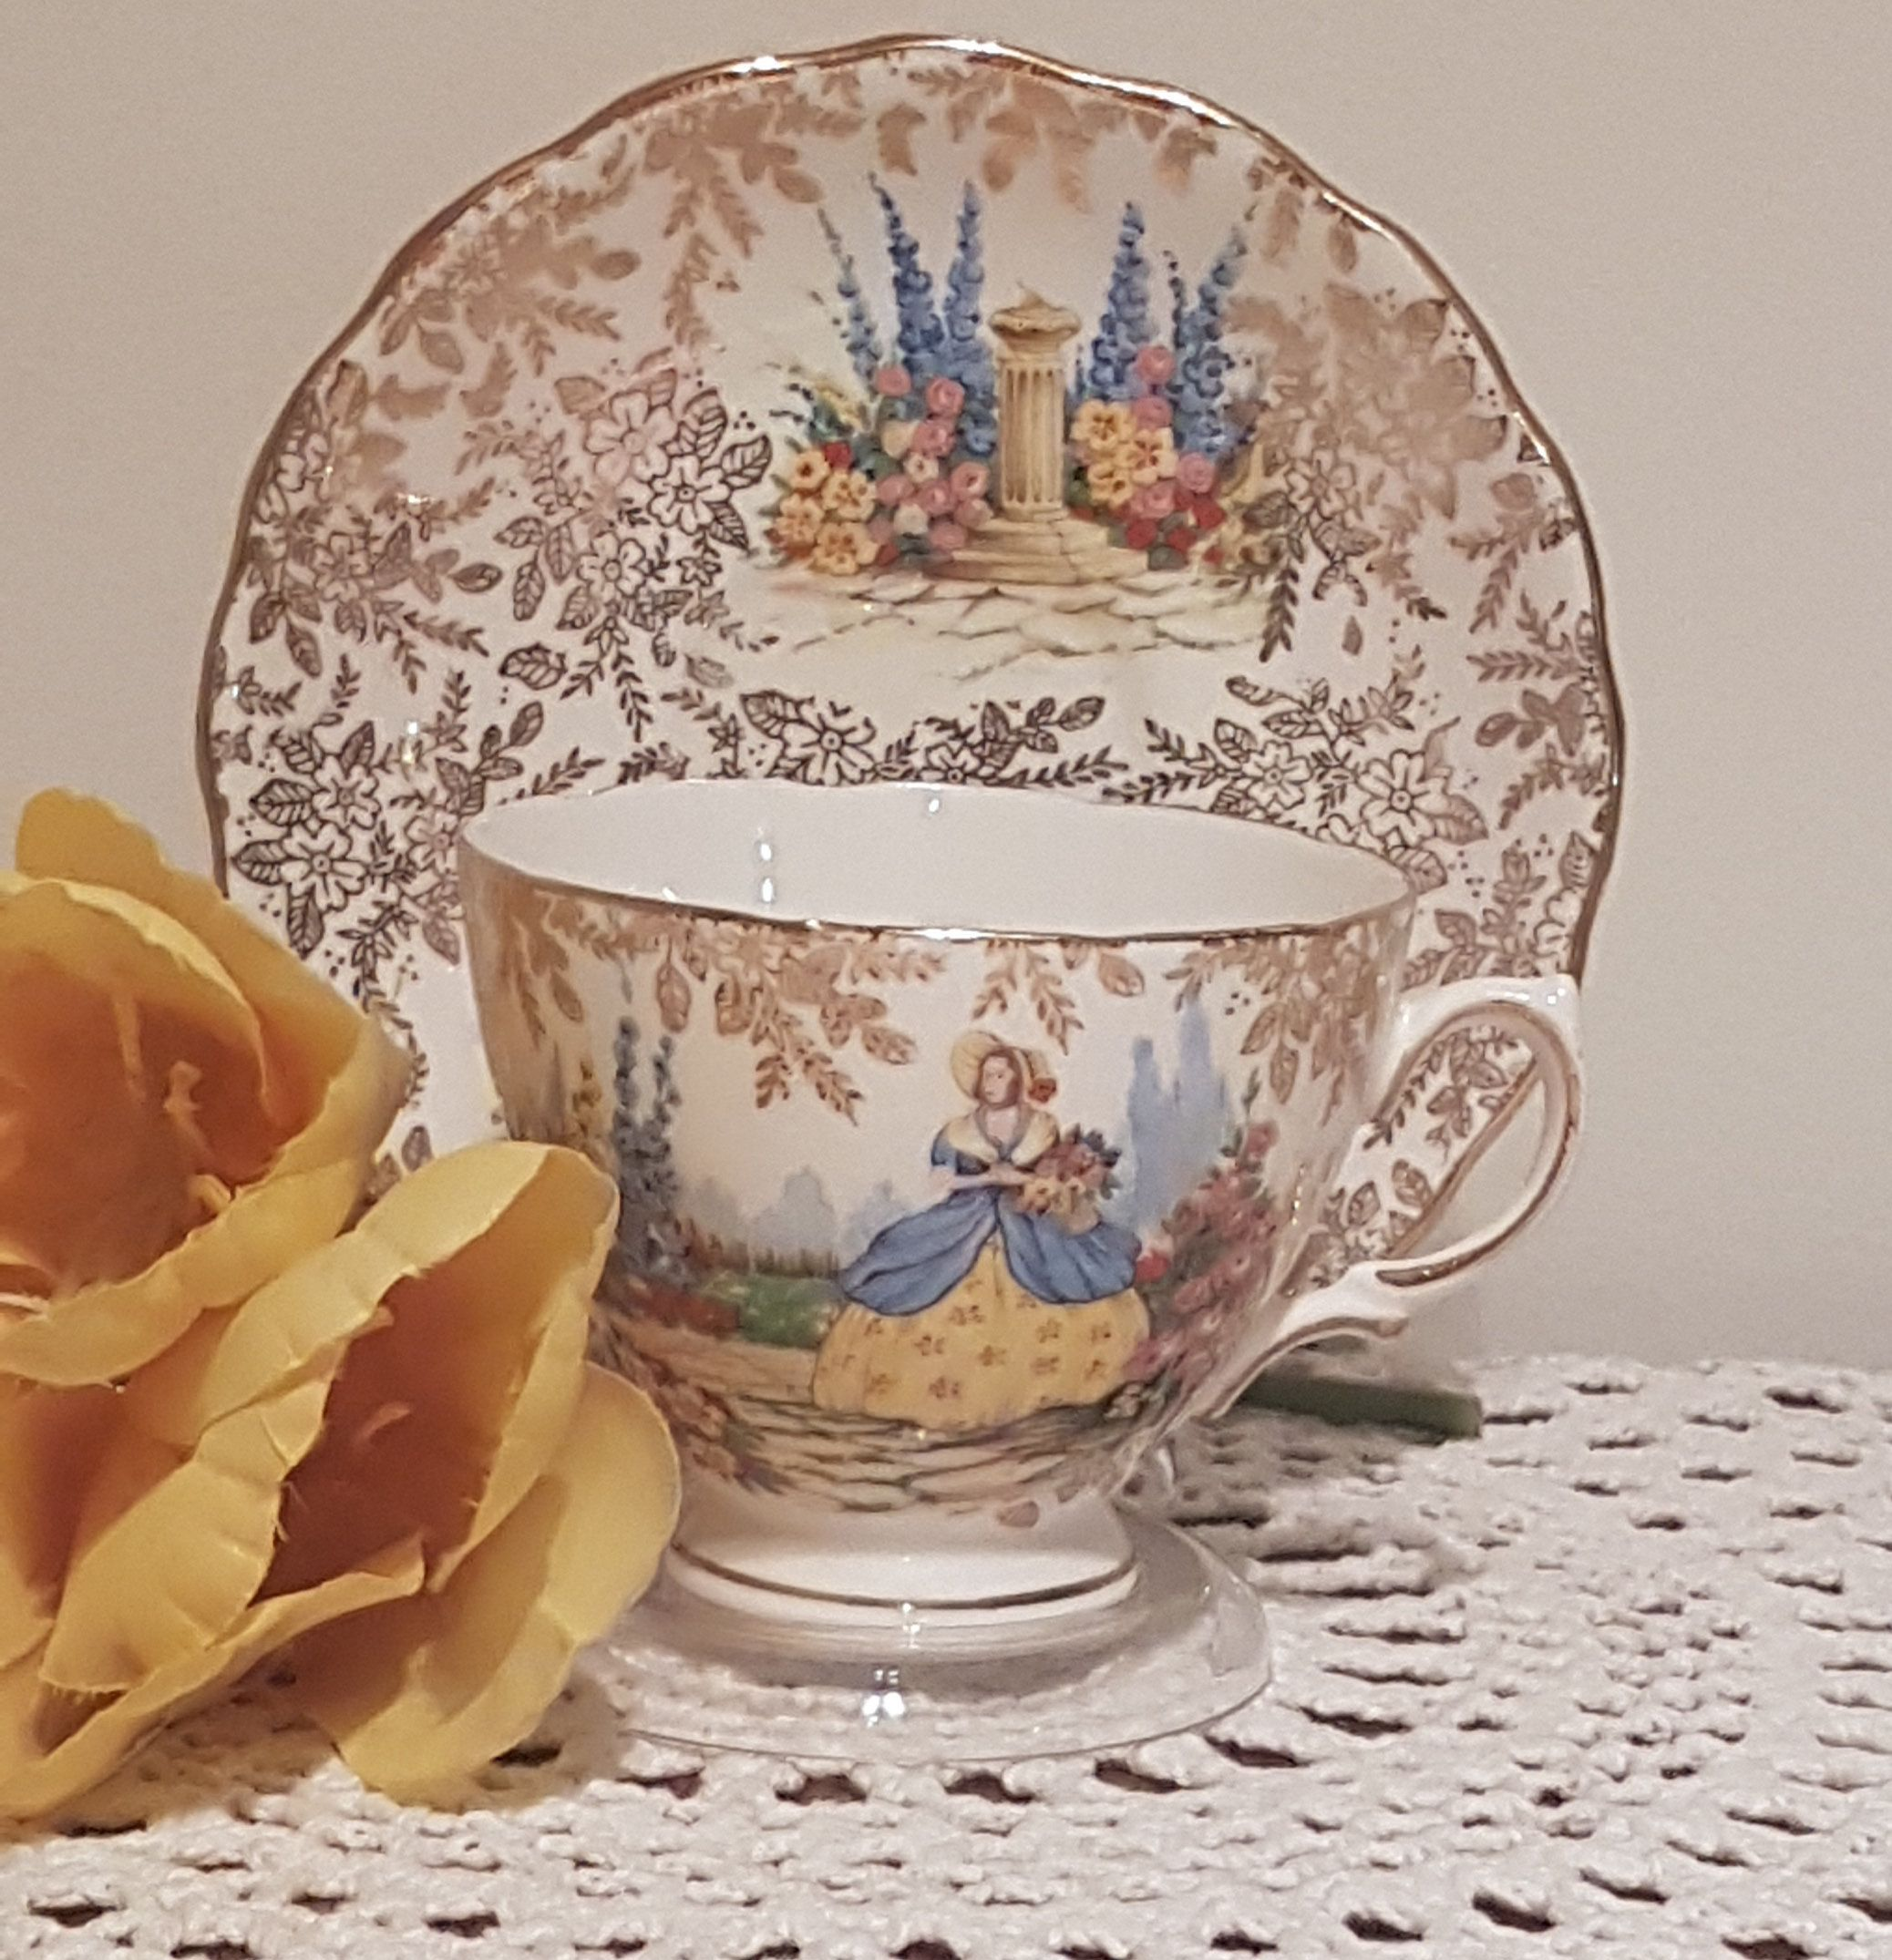 Colclough Bone China Pattern 6780 Lady In Yellow Blue Garden Gold Chintz Tea Cup Duo Free Shipping Bone China Tea Cups Tea Cups Tea Cups Vintage